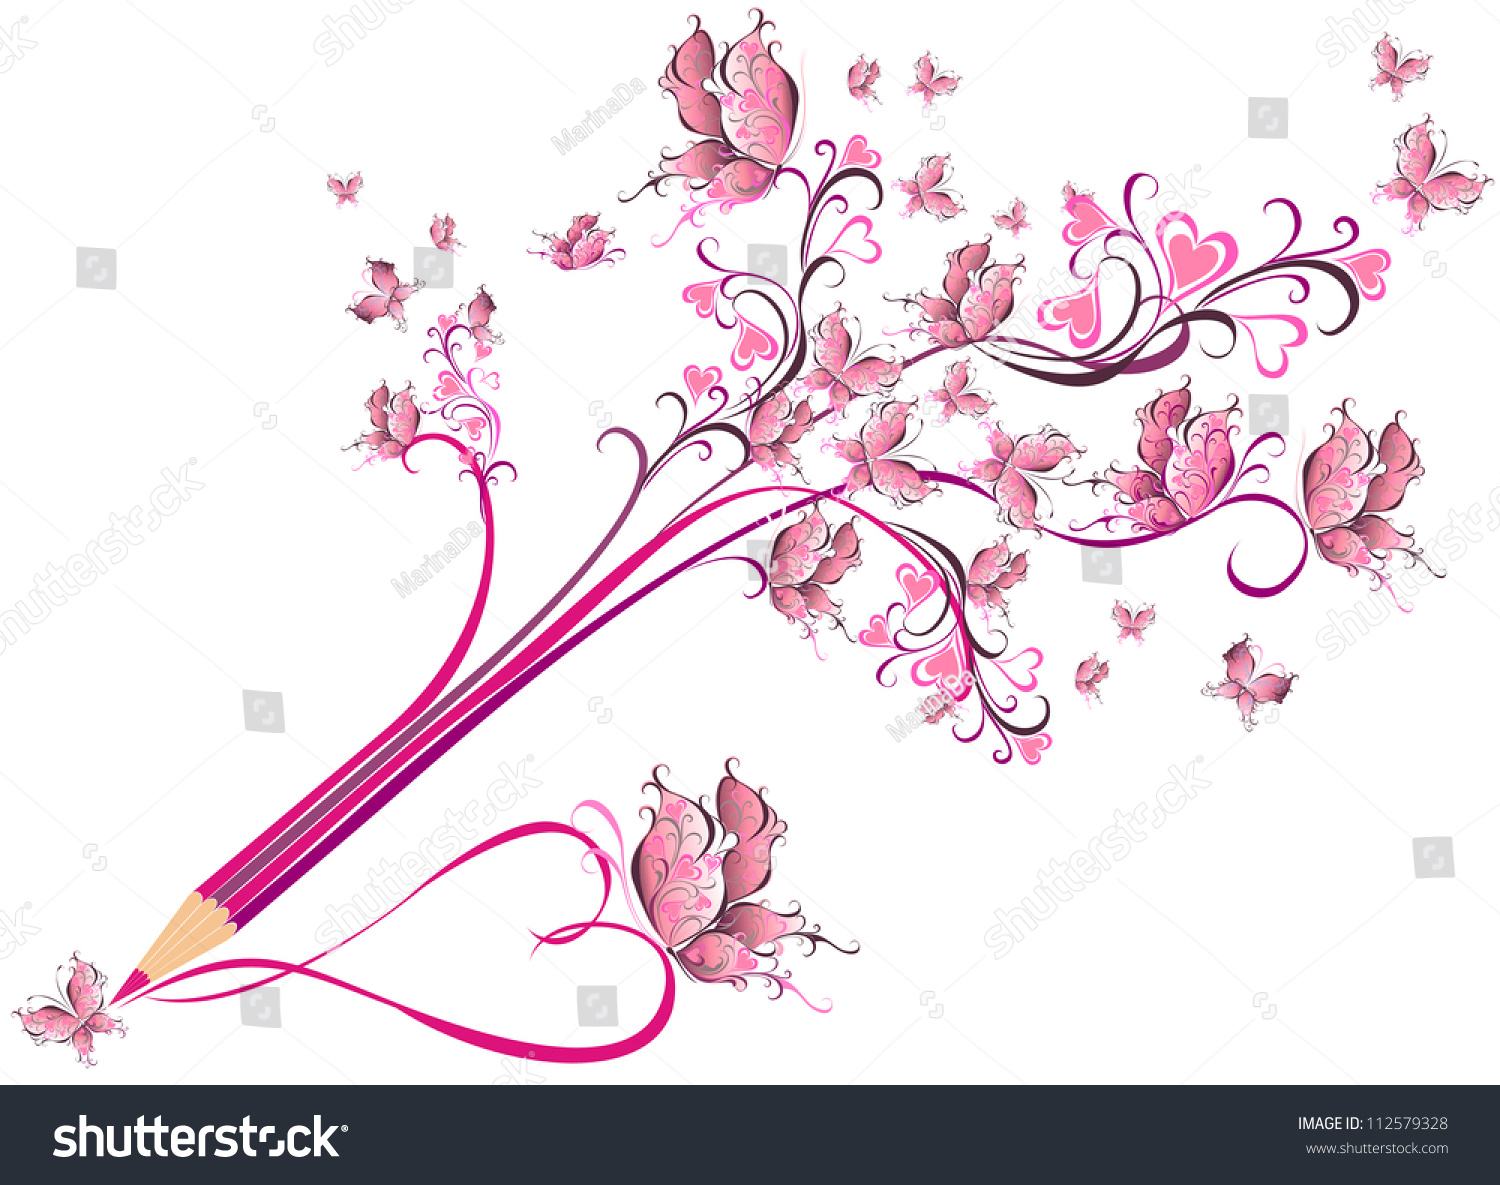 Notebook And Pen Sketch Stock Vector Art More Images Of: Creative Pencil Whit Floral Ornate Butterfly Stock Vector